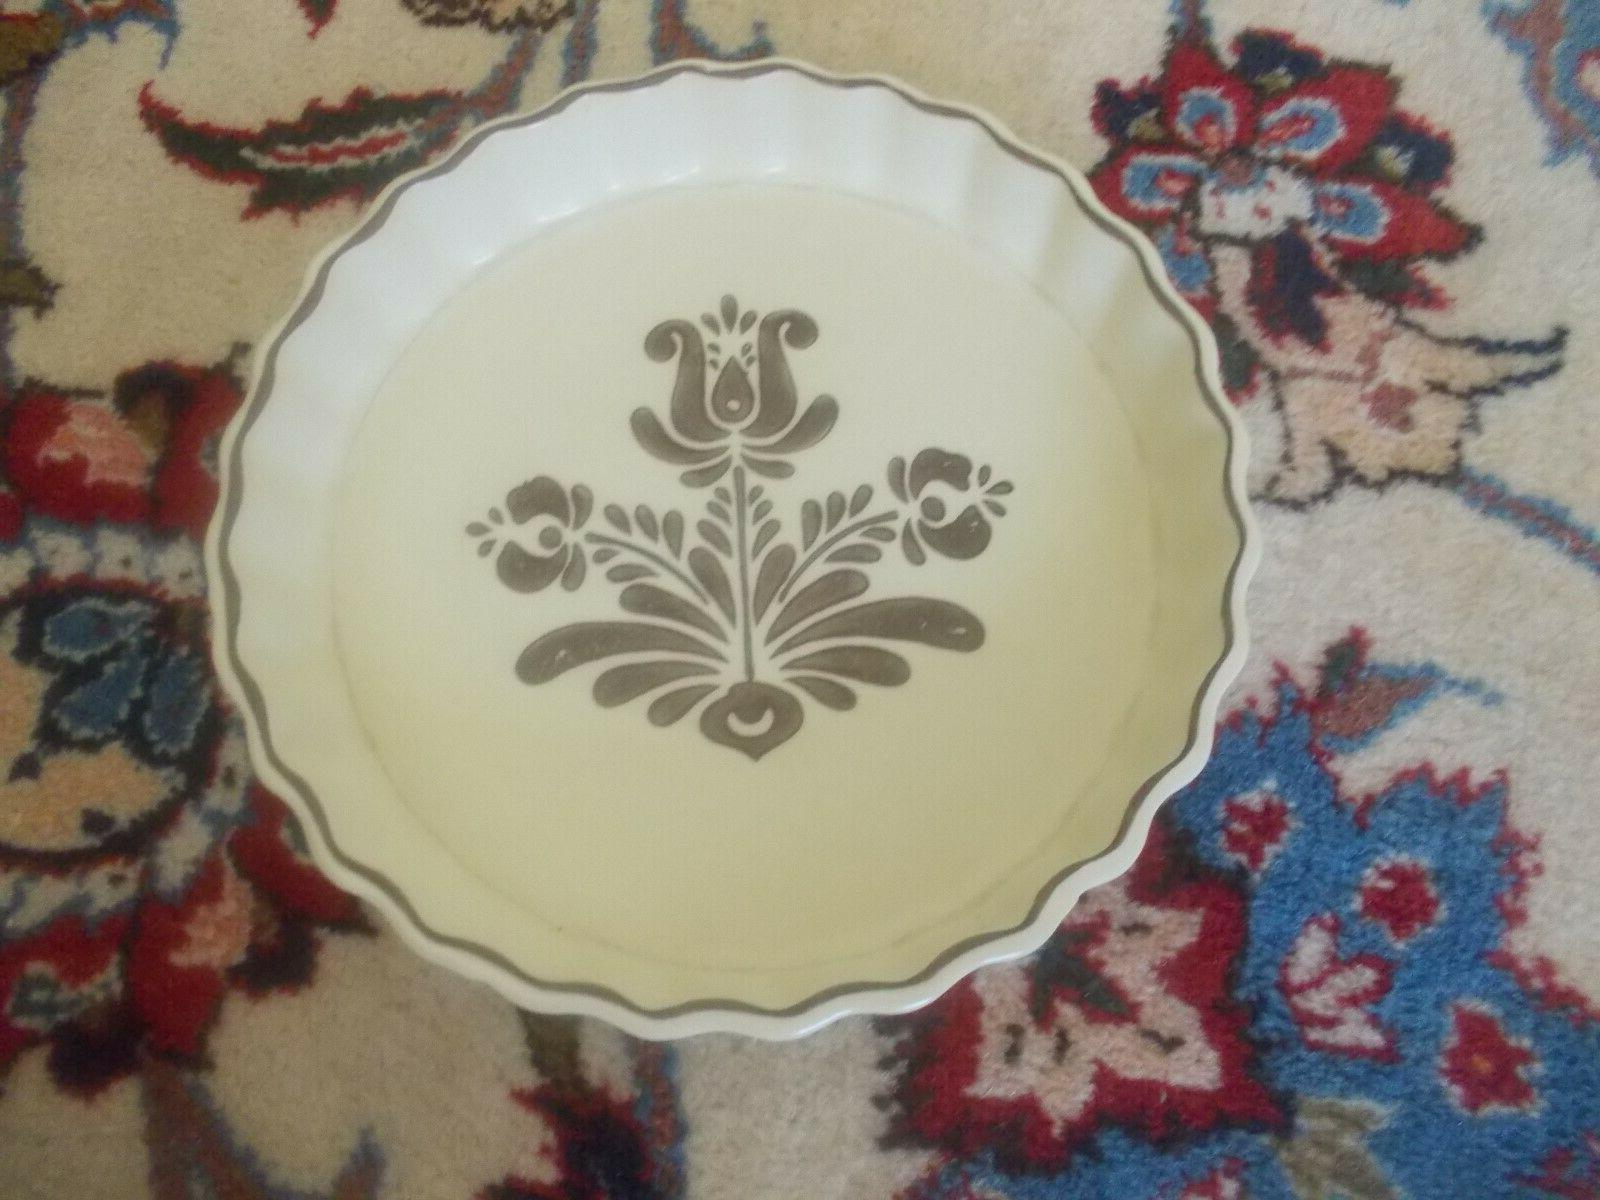 1970's Quiche Dish, Microwave/Oven Safe!